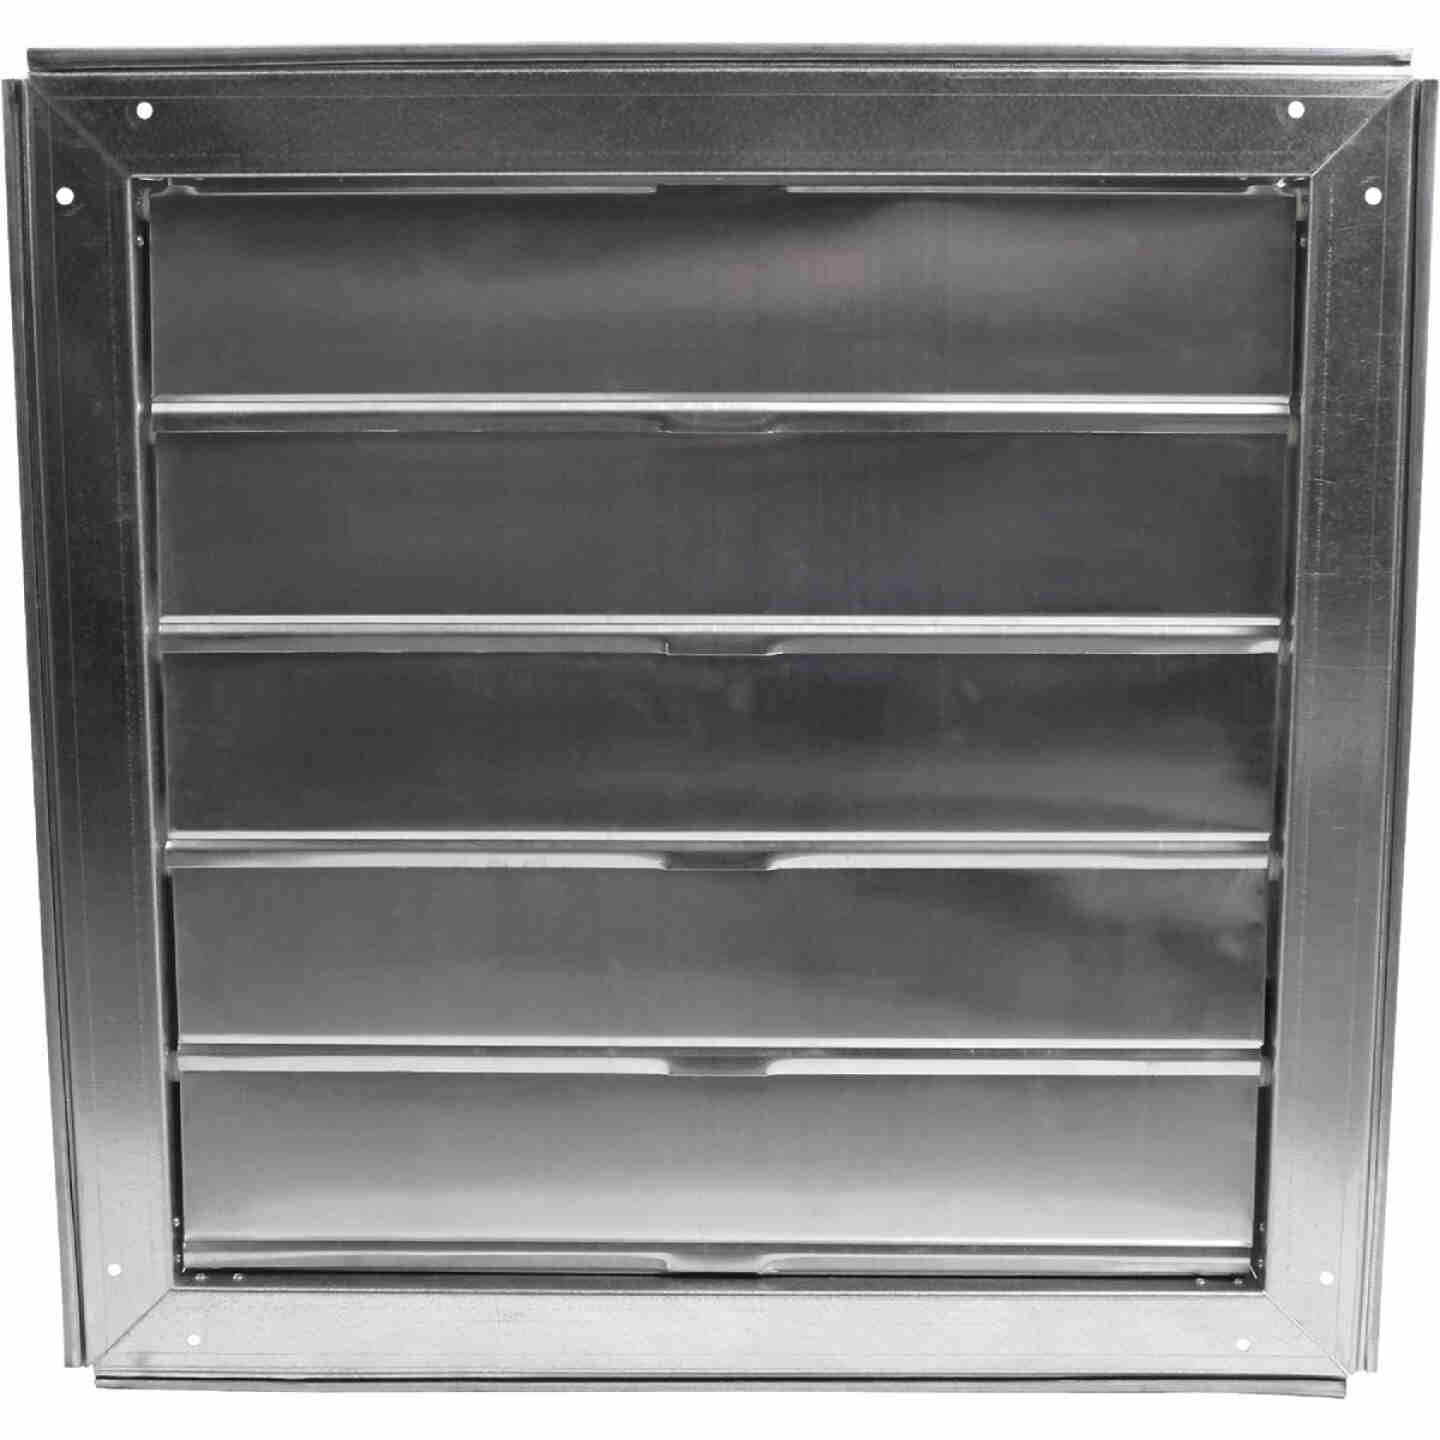 Ventamatic Cool Attic Galvanized Steel, Aluminum Louvers 22 In. W x 22 In. H x 3 In. D Automatic Automatic Gable Shutter Image 1